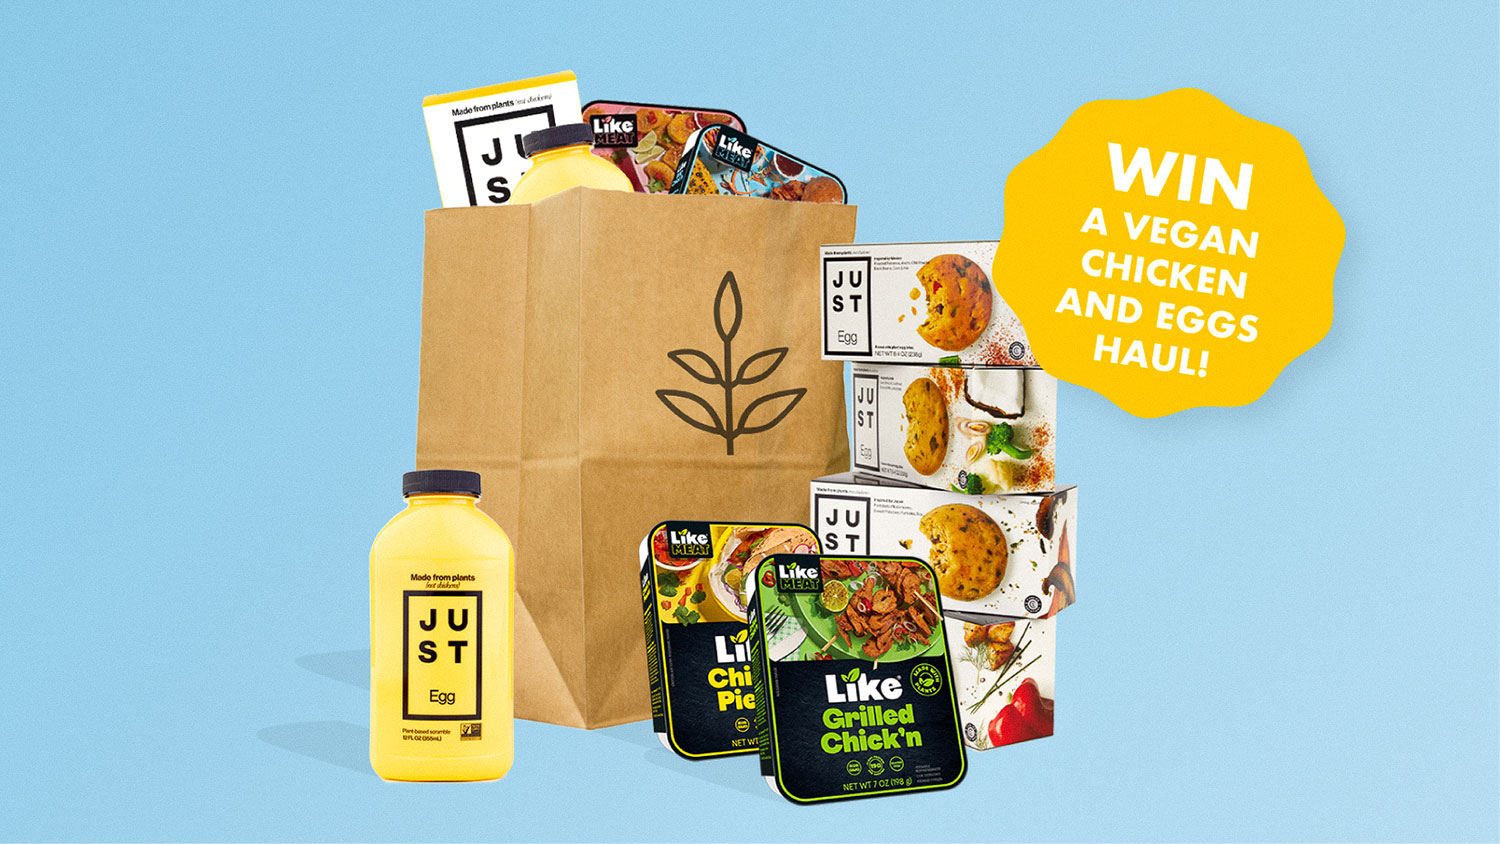 Win This: Grocery Haul of Vegan Chicken and Eggs!